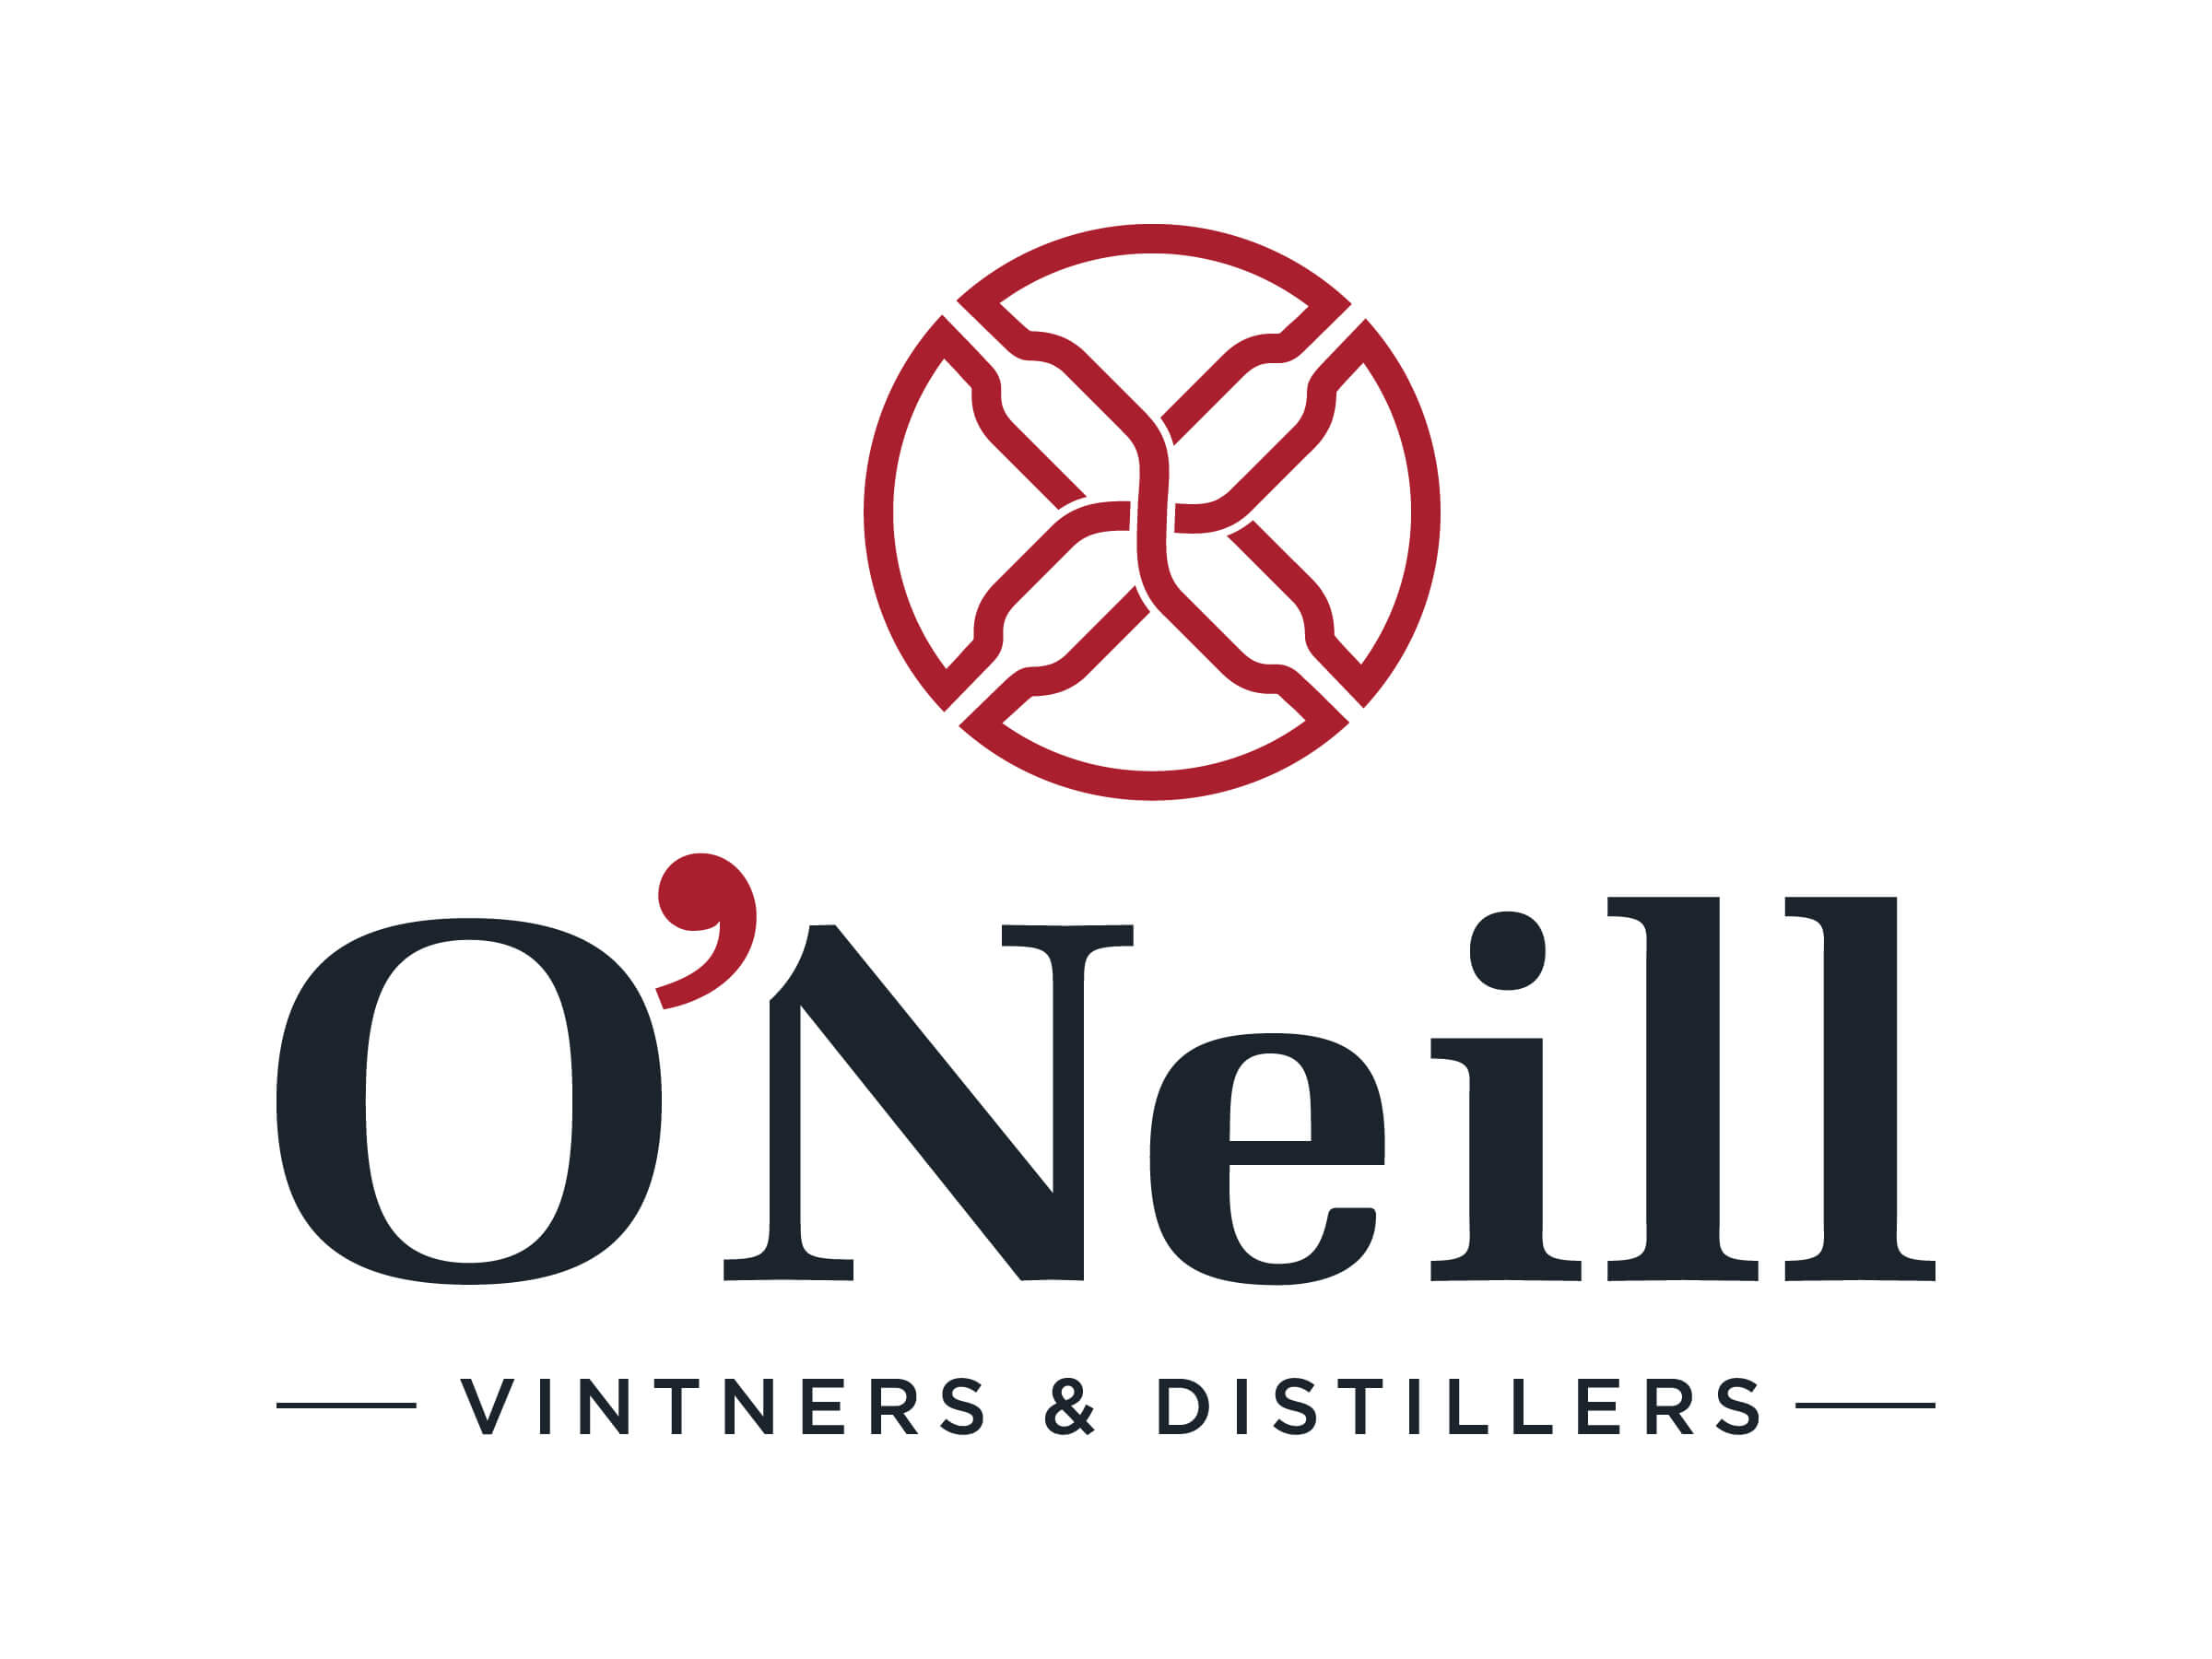 ONeill Vintners and Distillers